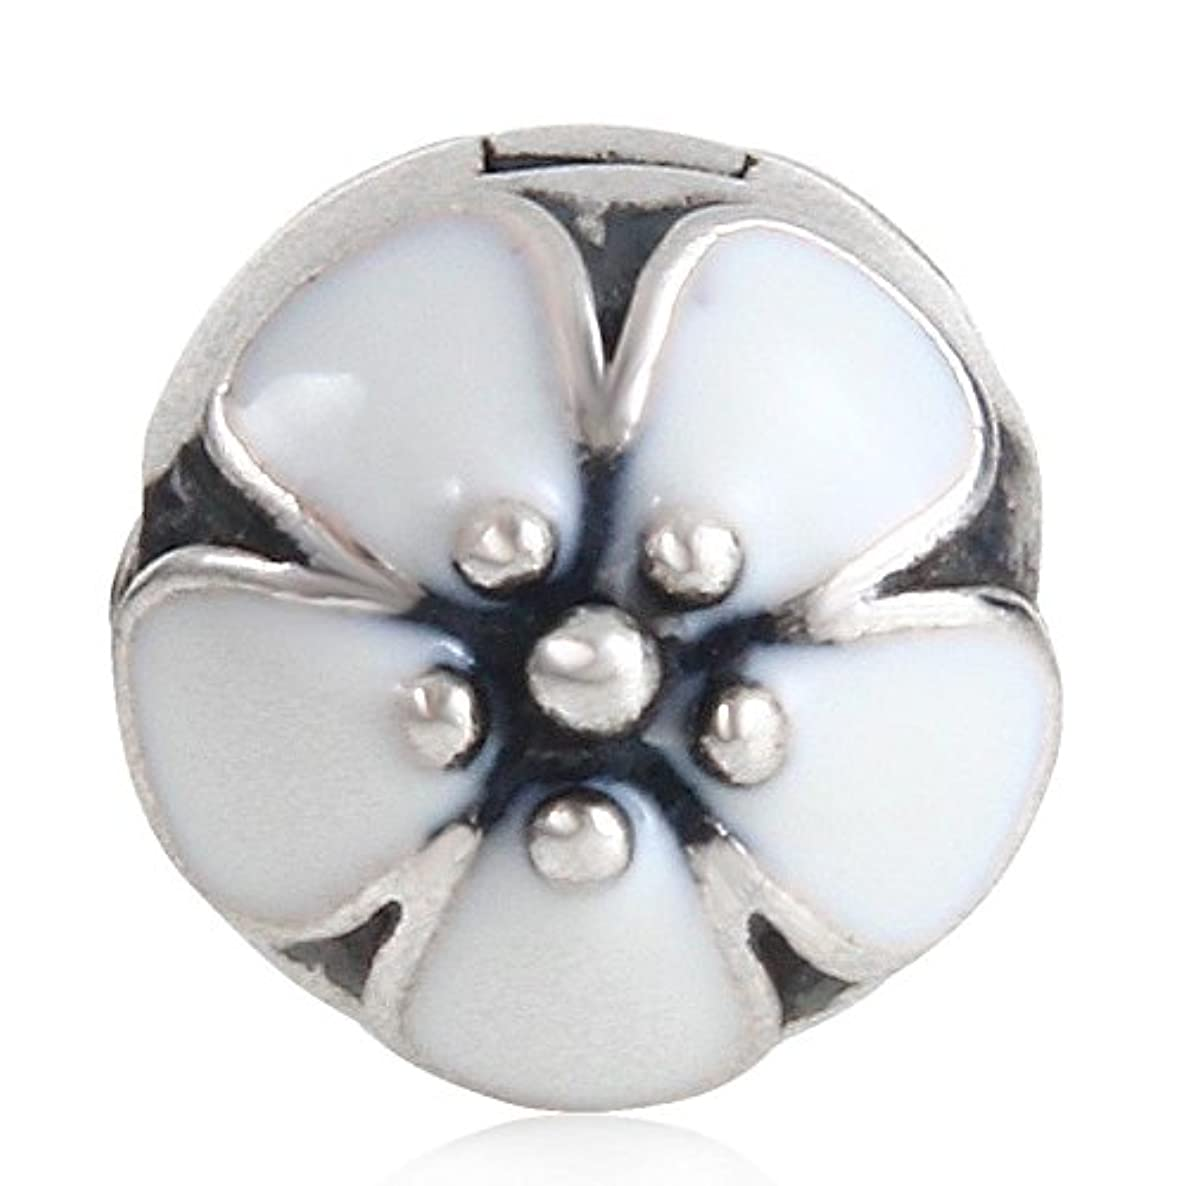 Lotus Flower Clip Lock Charm Authentic 925 Sterling Silver Bead for European Charm Bracelet